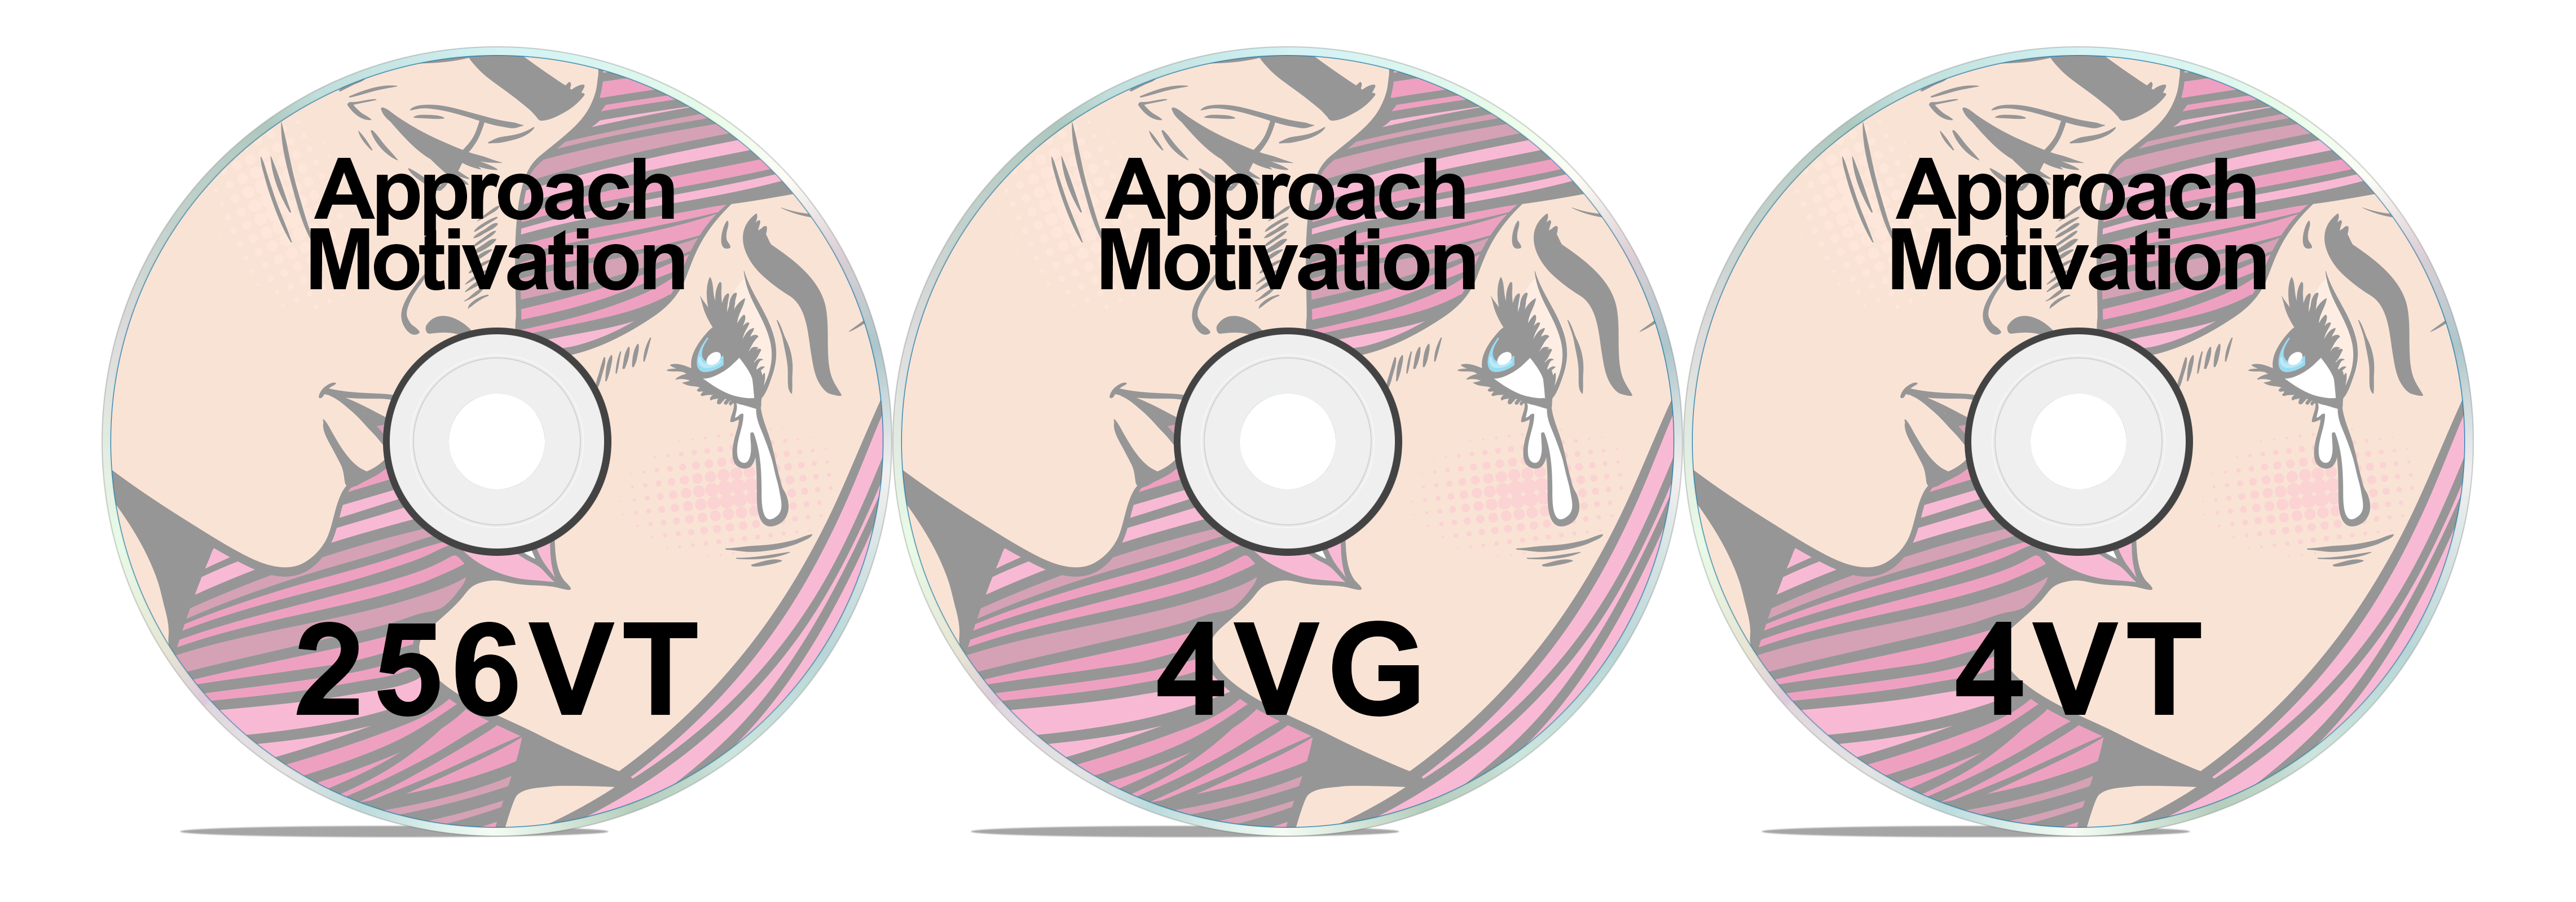 Approach Motivation